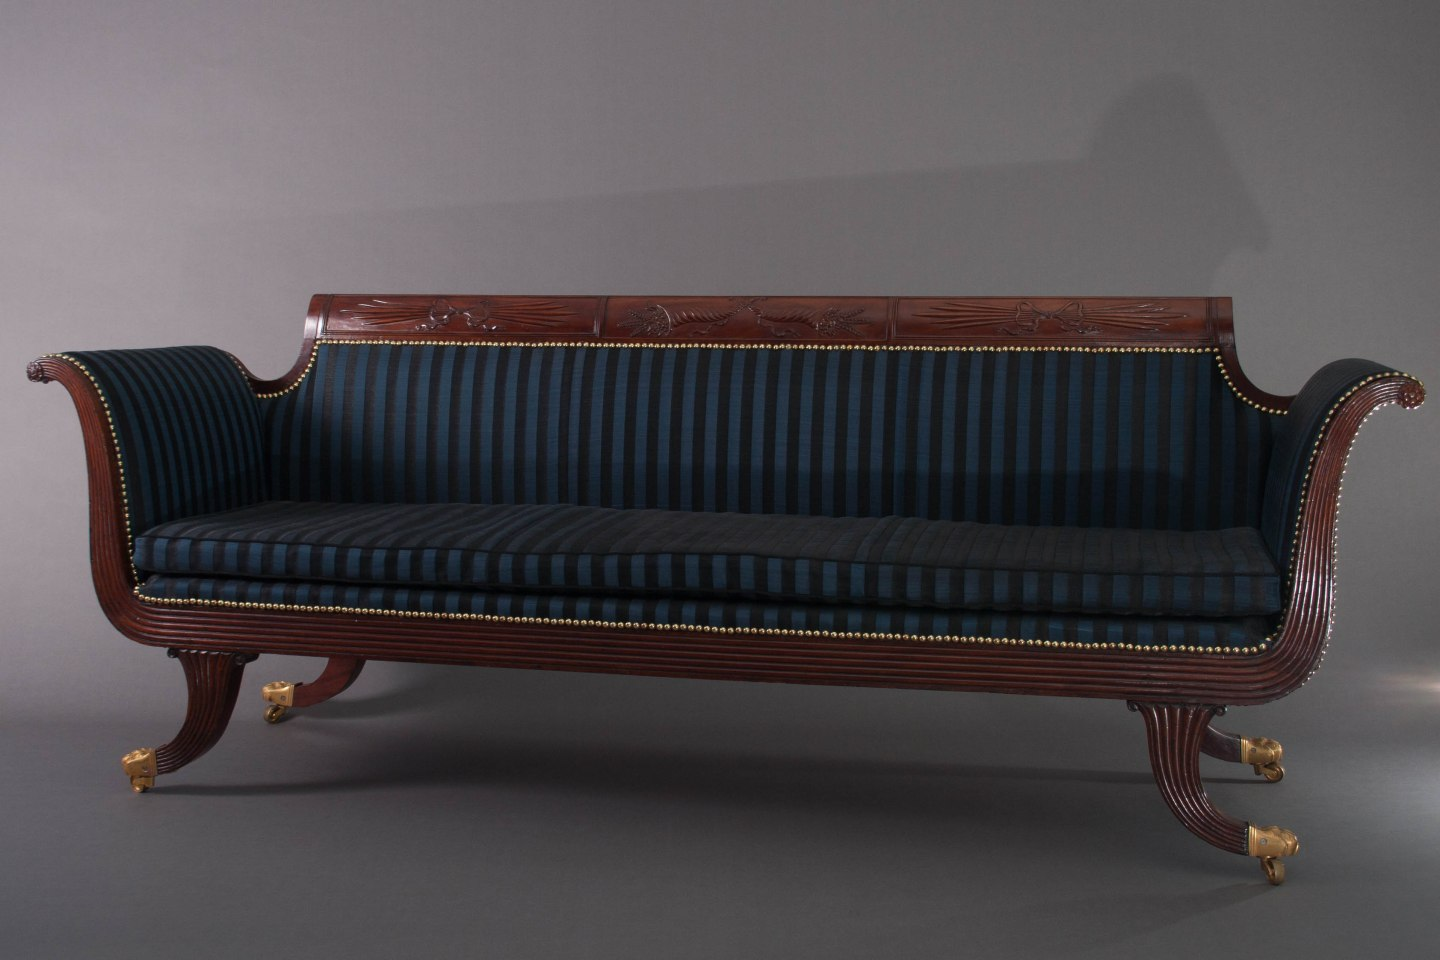 Grecian Scroll-Arm Sofa by Duncan Phyfe